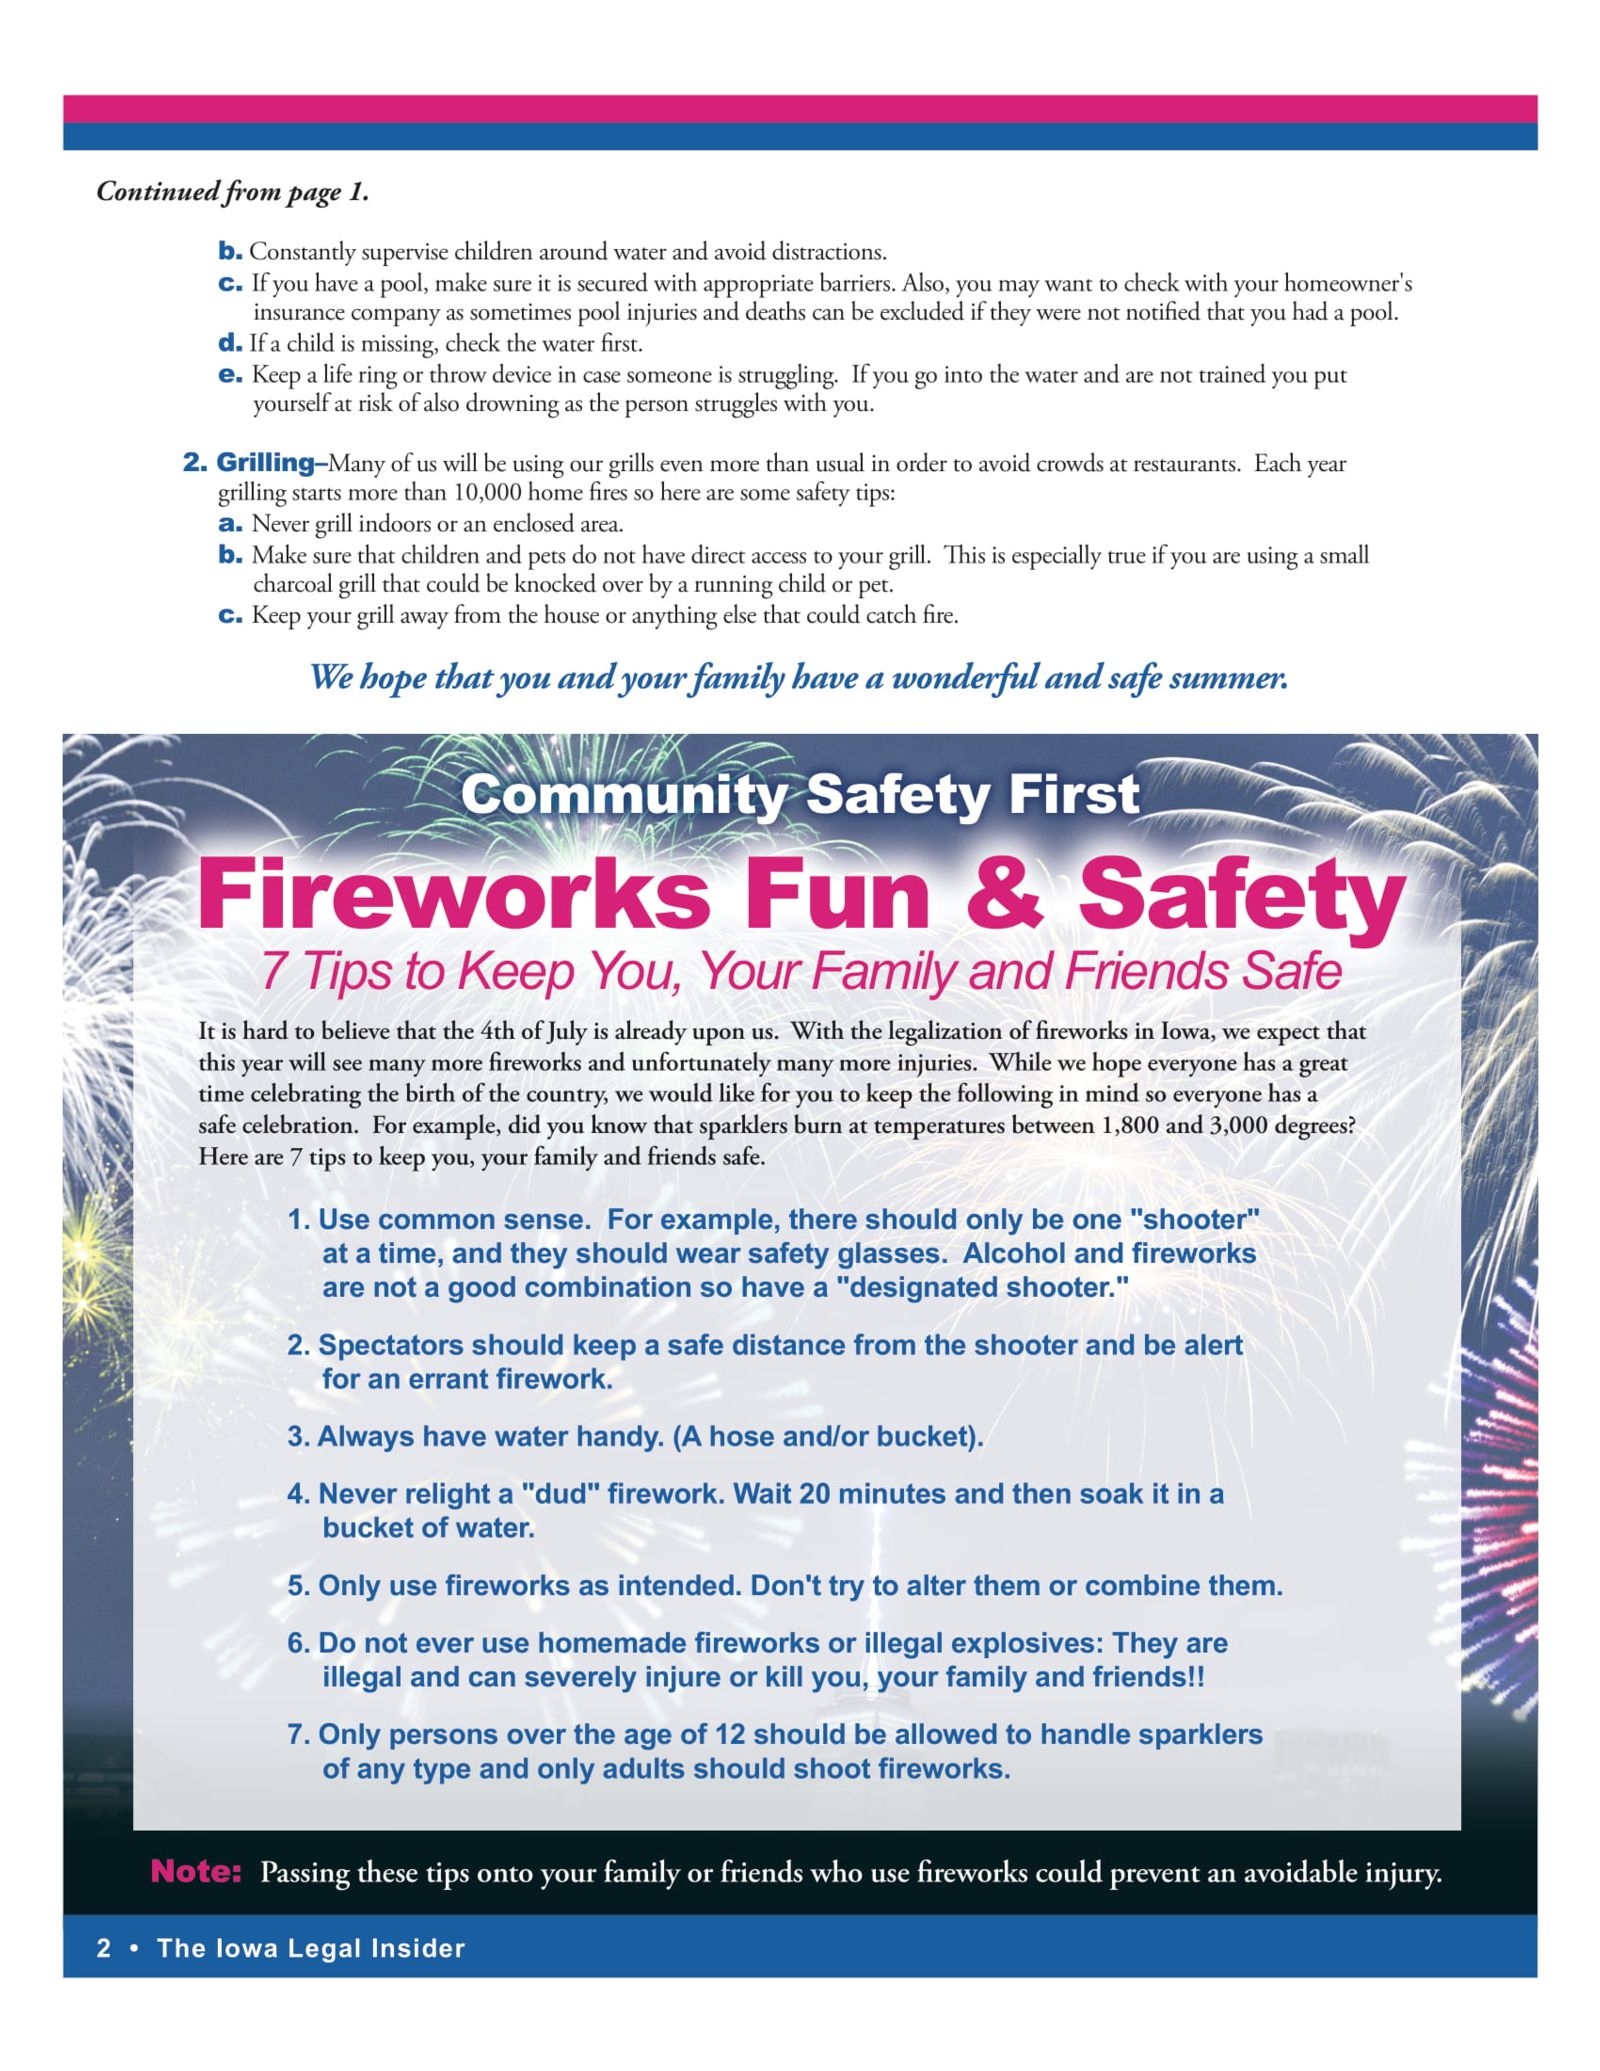 fire work fun and safety